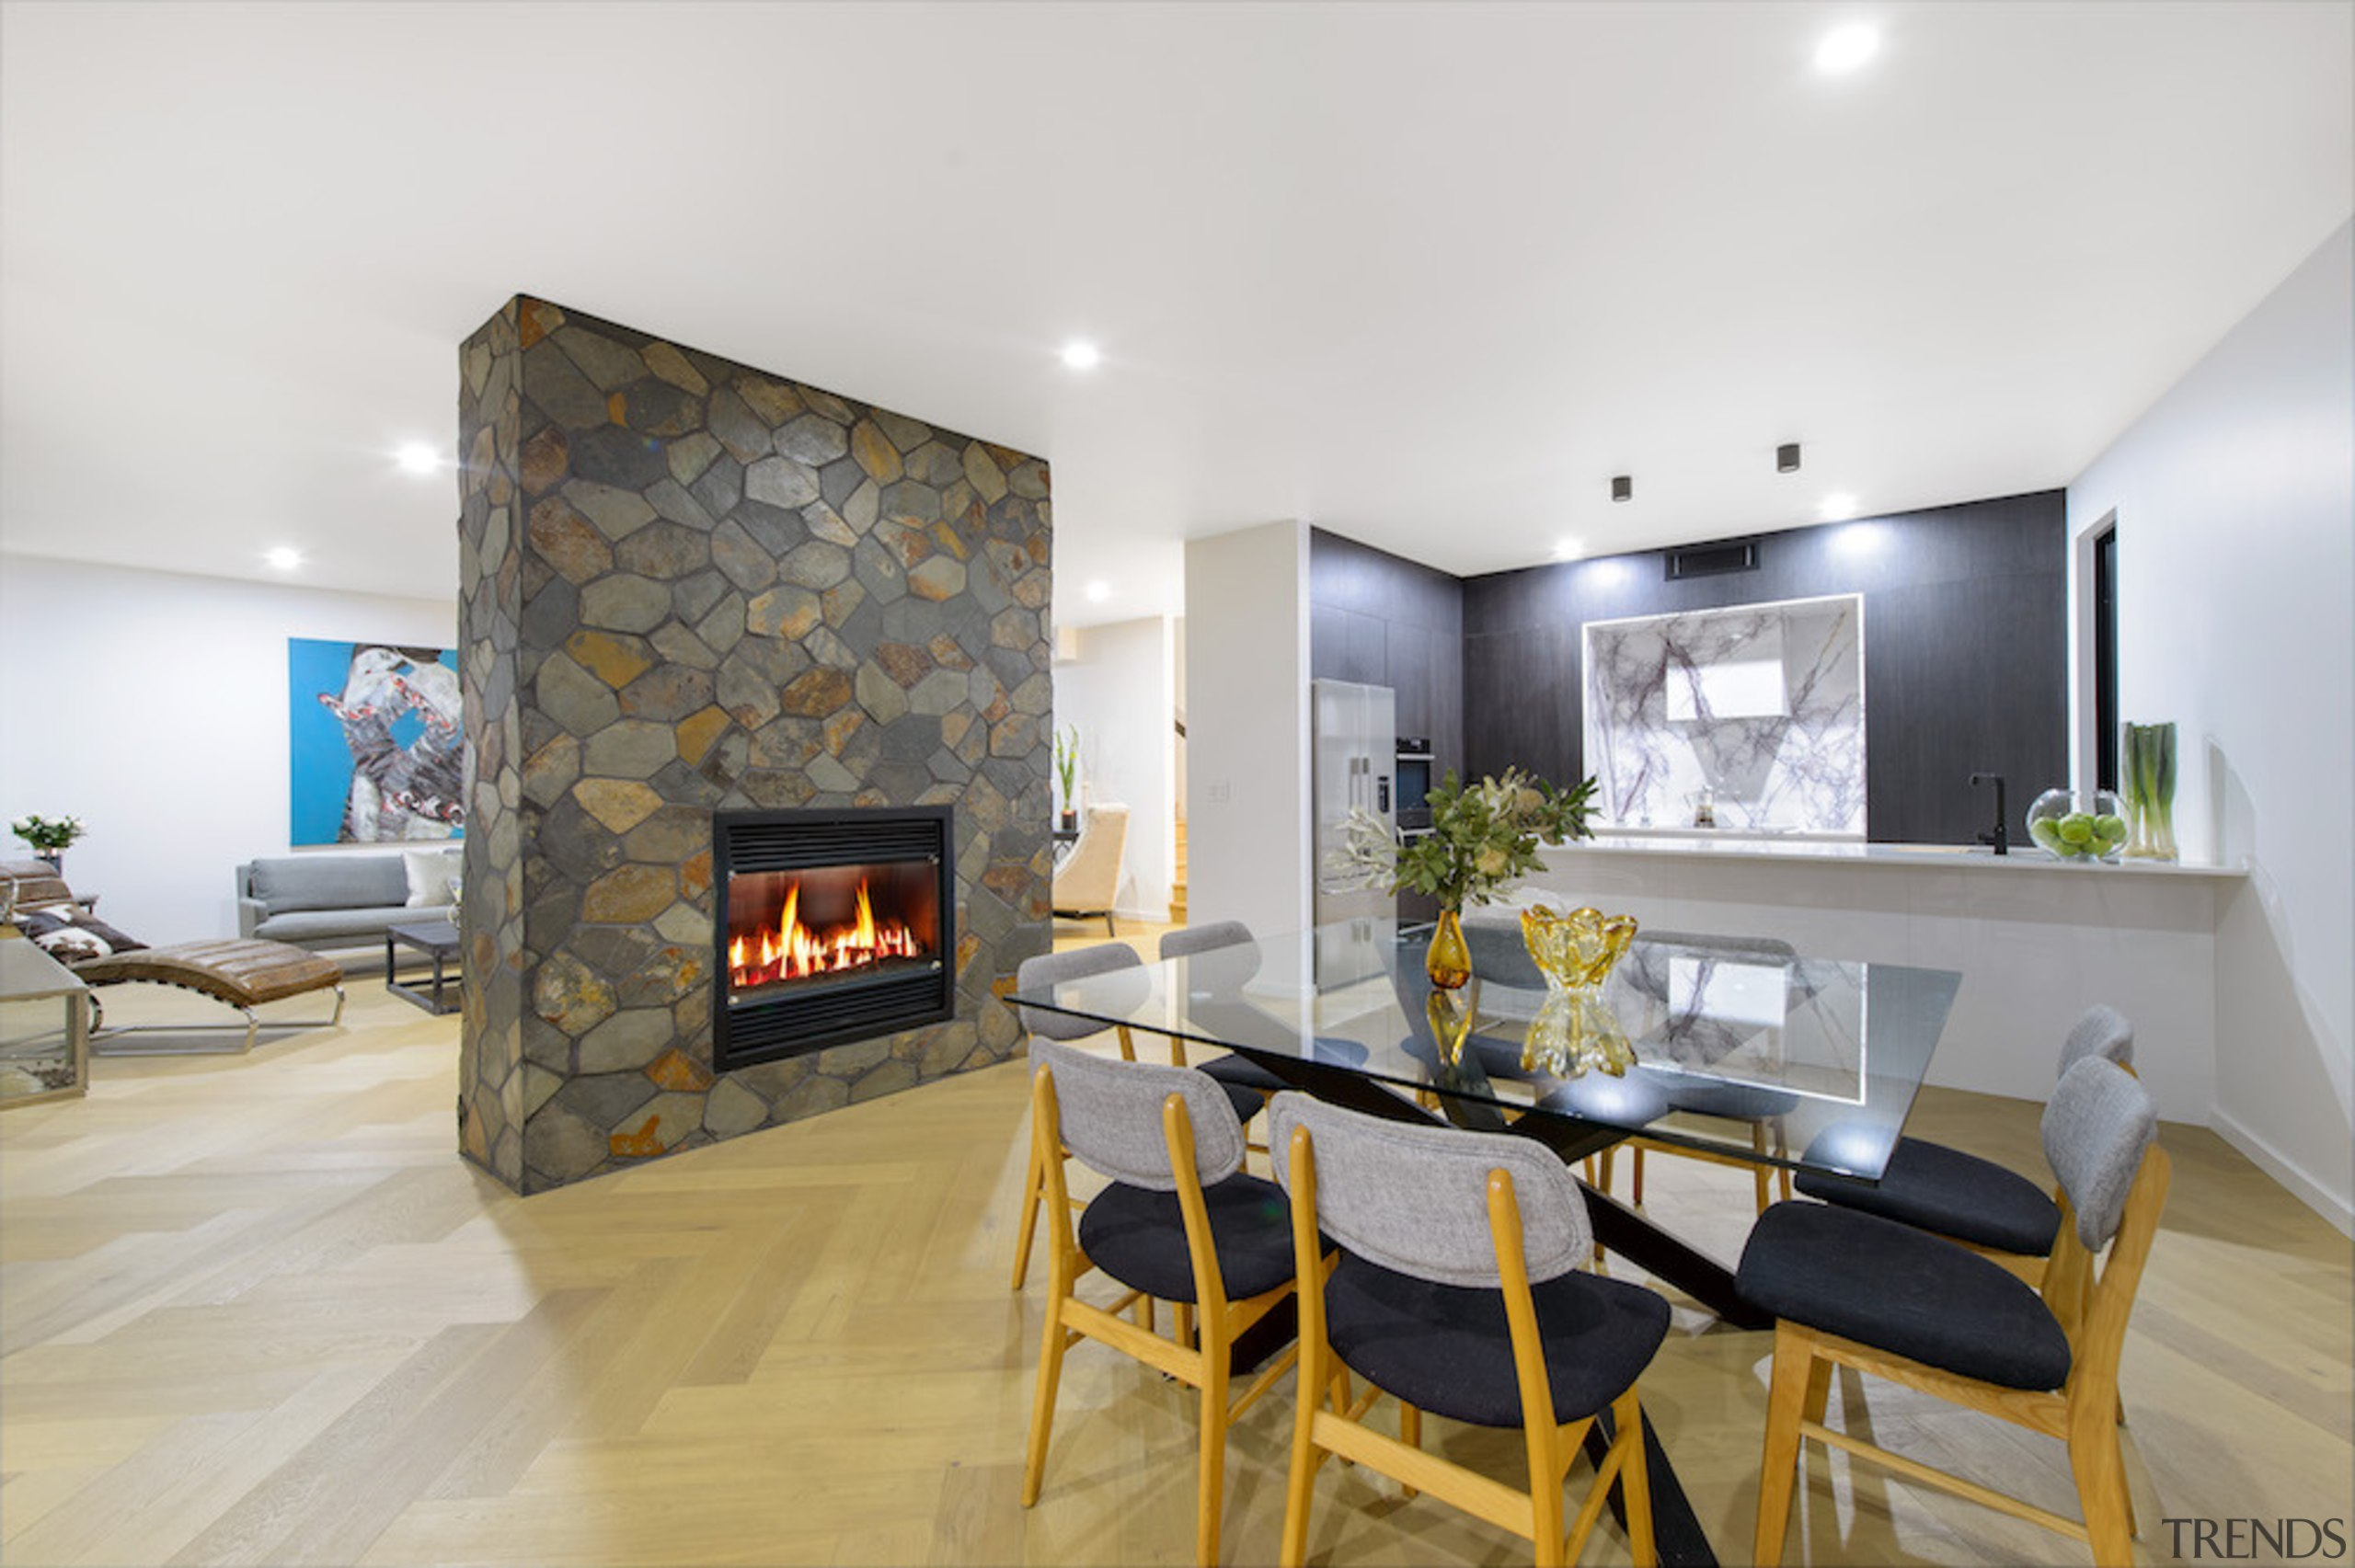 Stone fire surround connects with marble kitchen across building, design, dining room, estate, fireplace, floor, furniture, hearth, home, house, interior design, living room, property, real estate, room, table, white